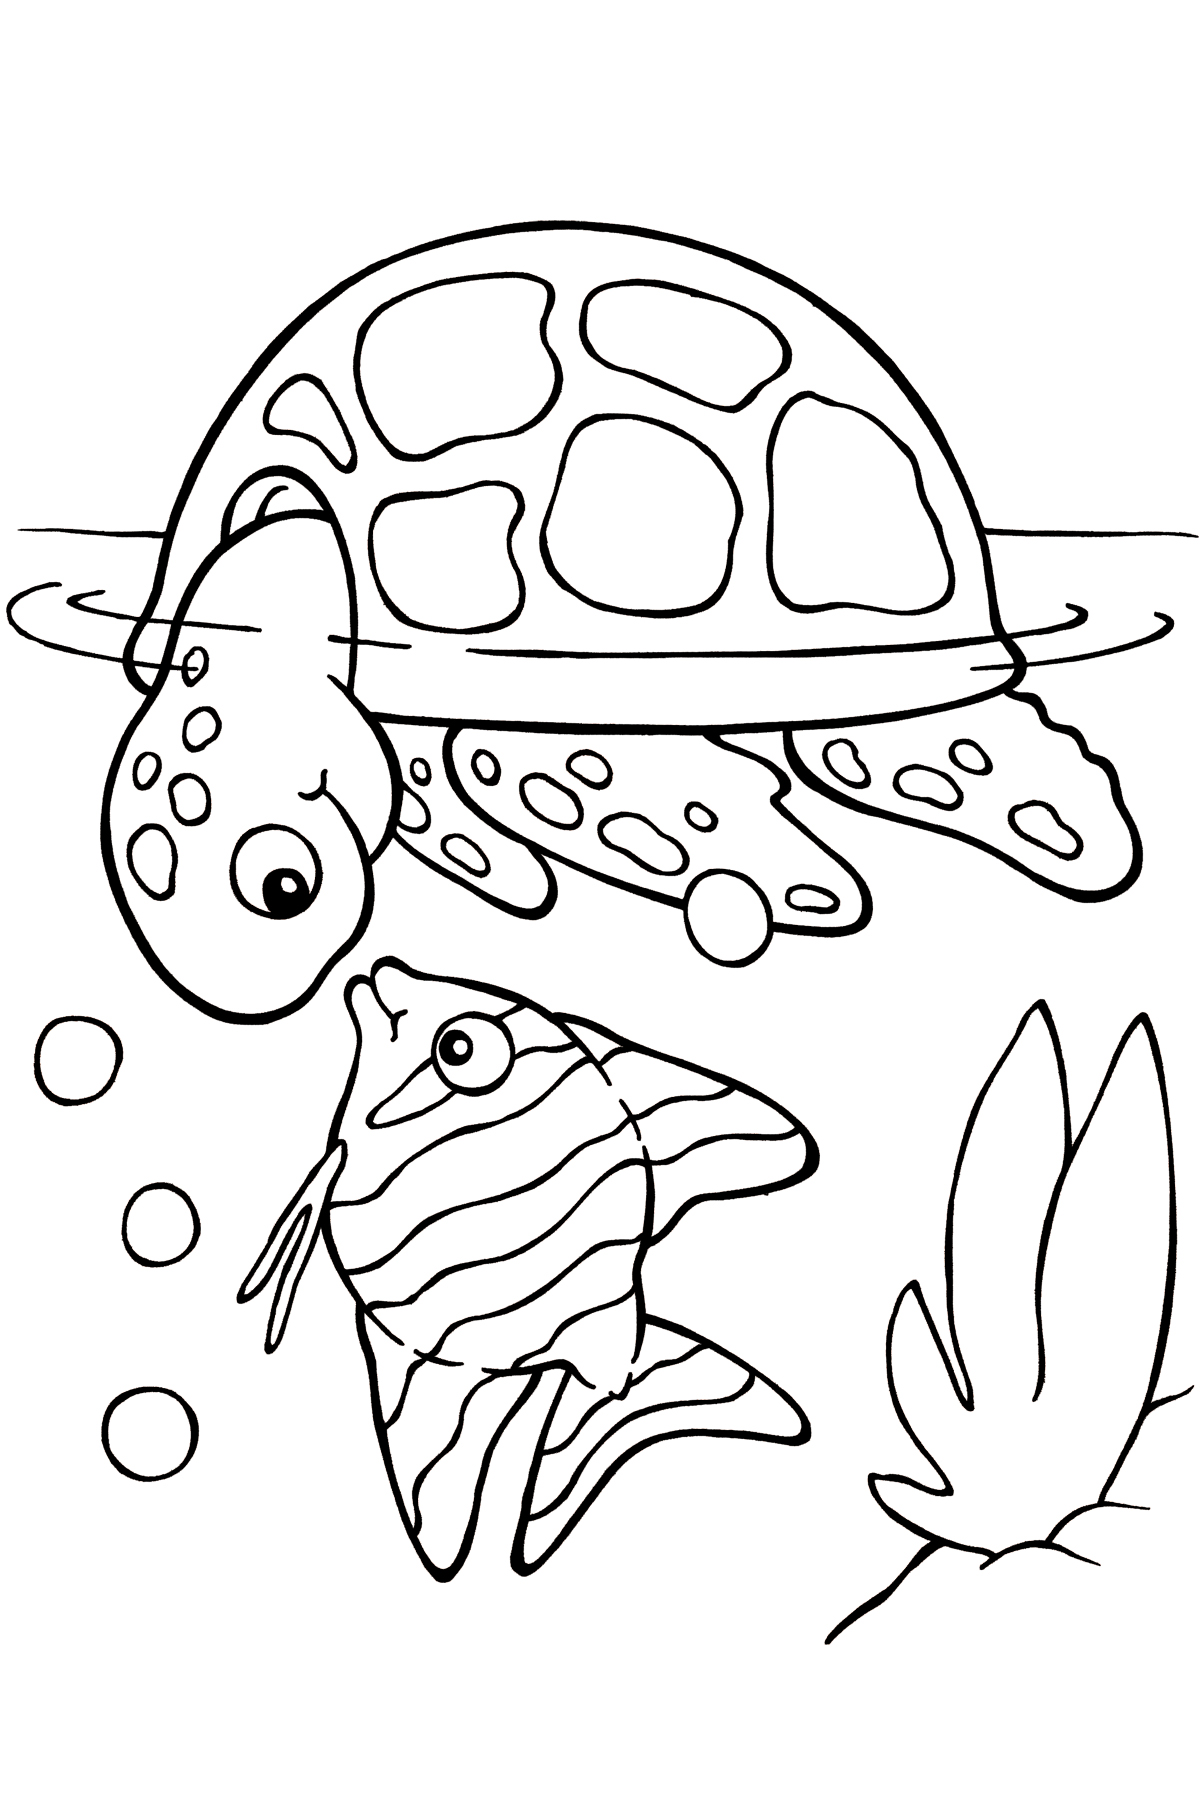 turtle coloring pages sea turtle coloring pages to download and print for free